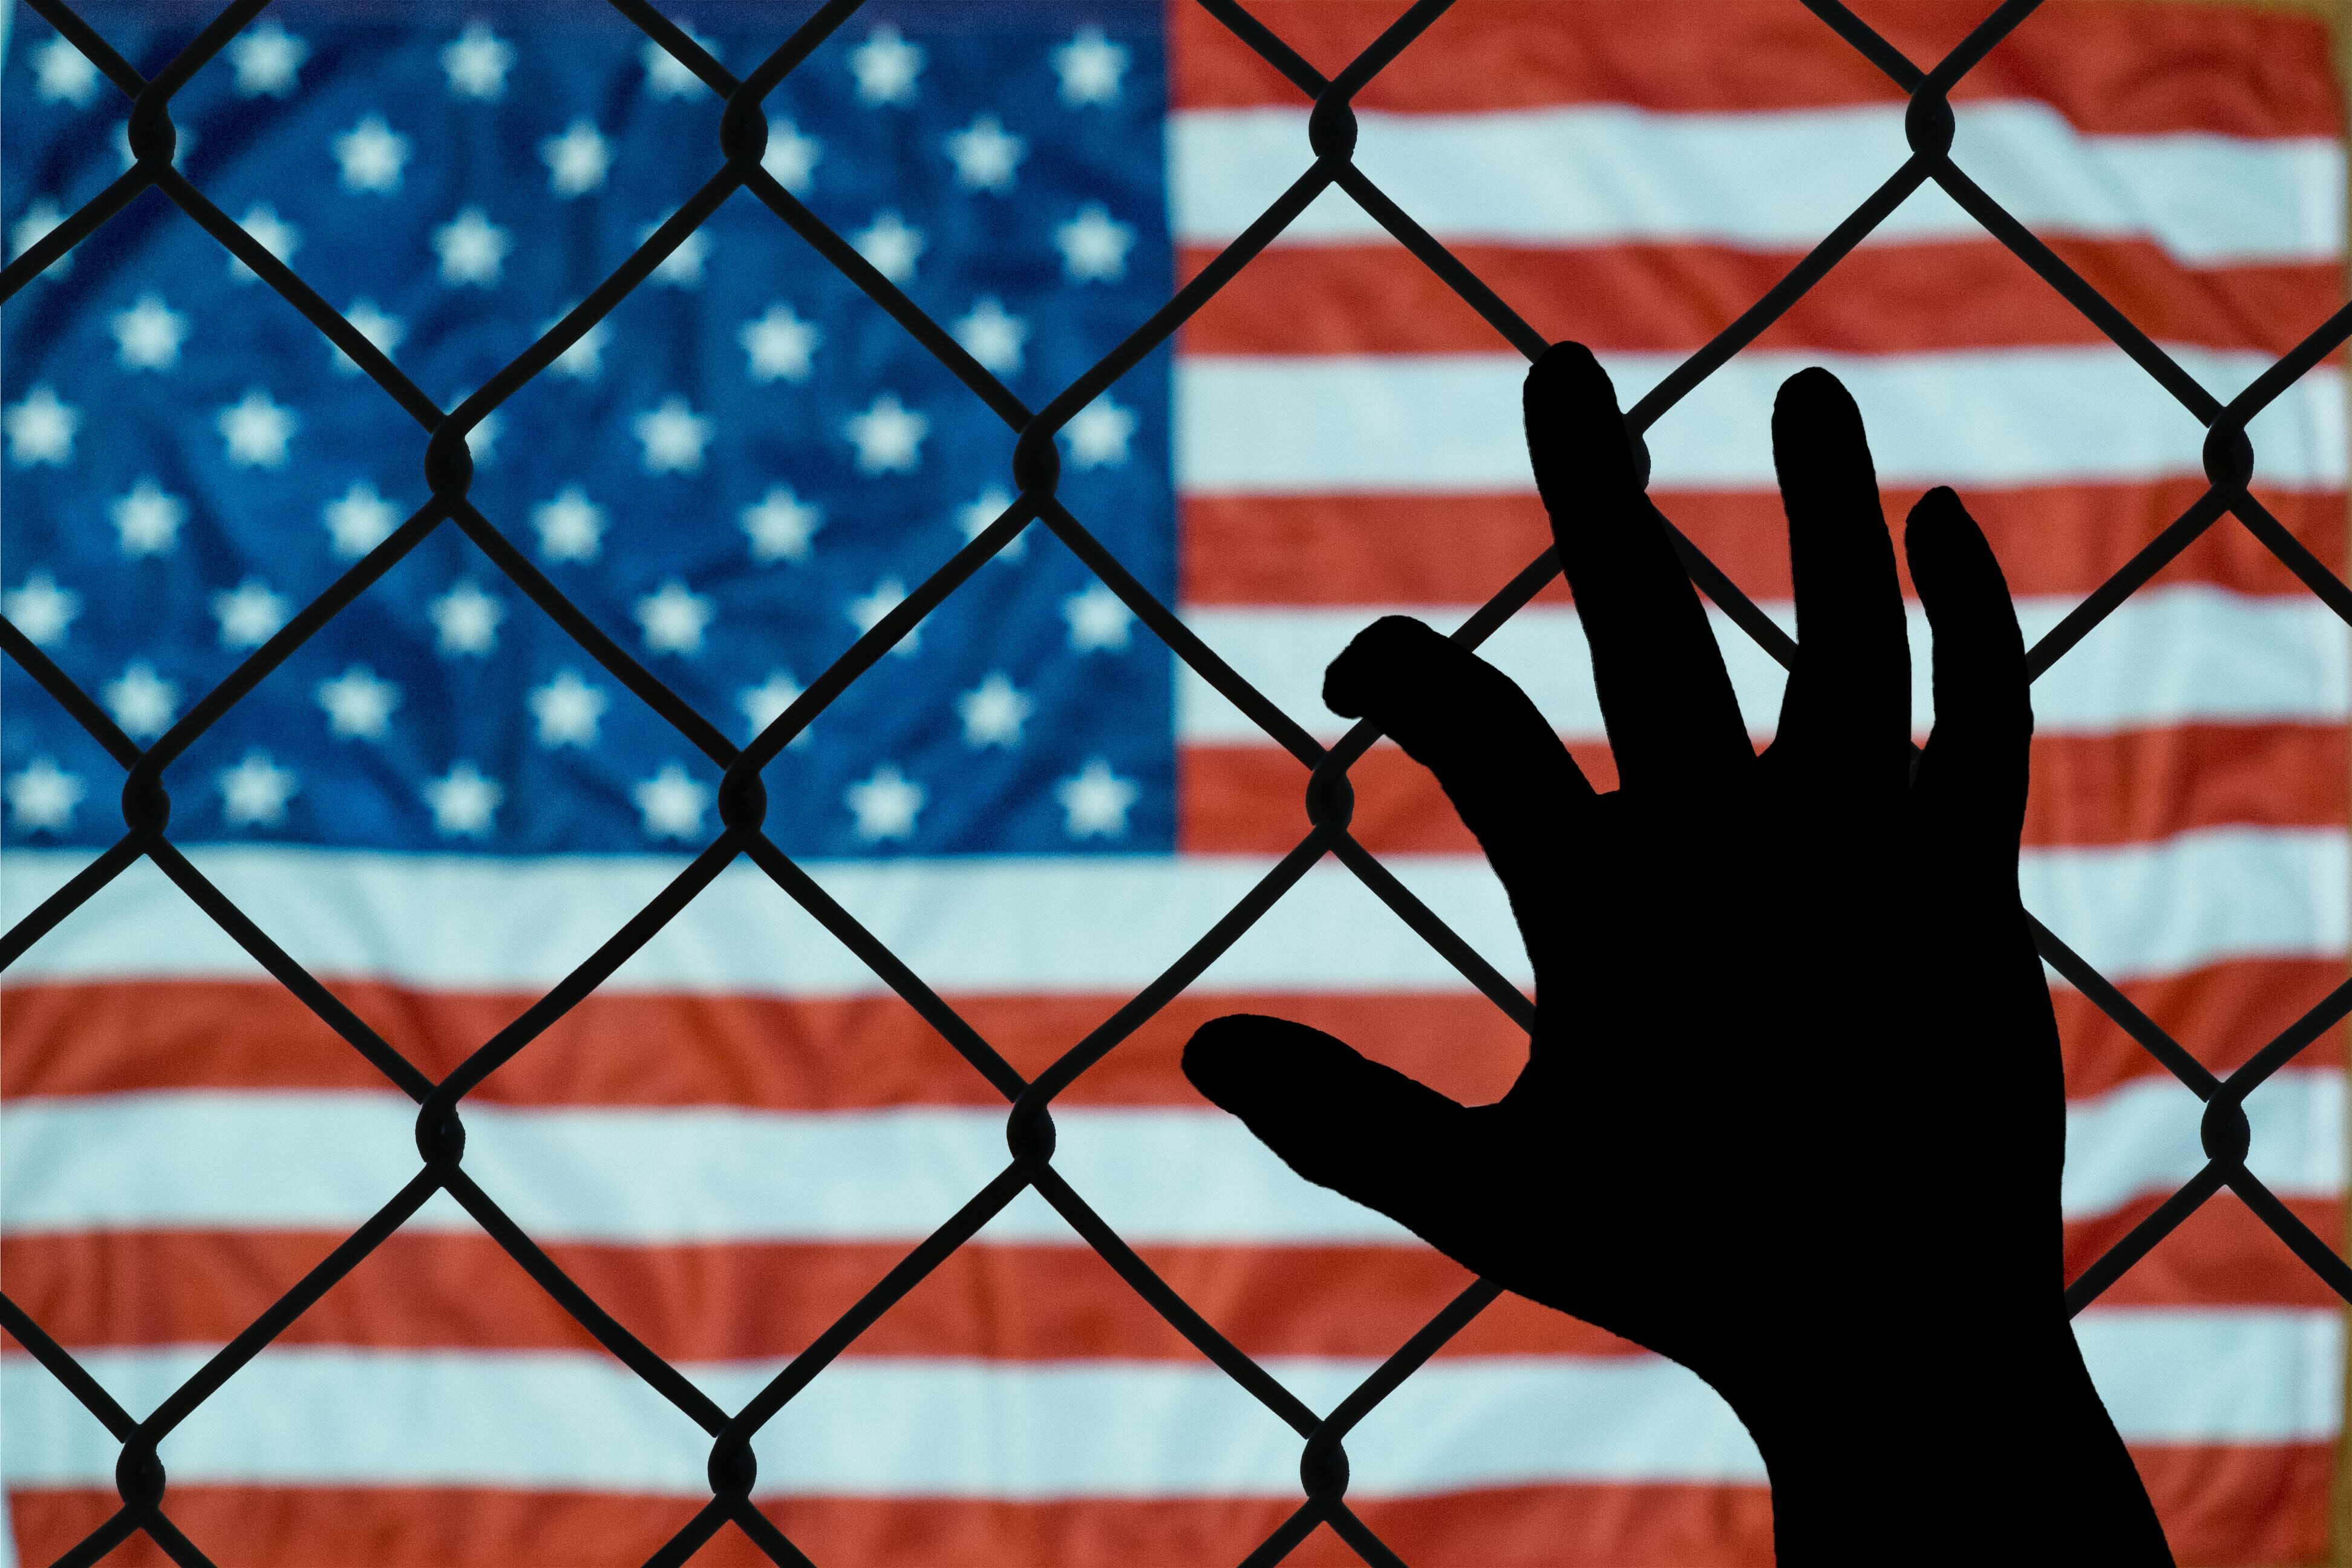 Hand holding a fence with American flag in the background